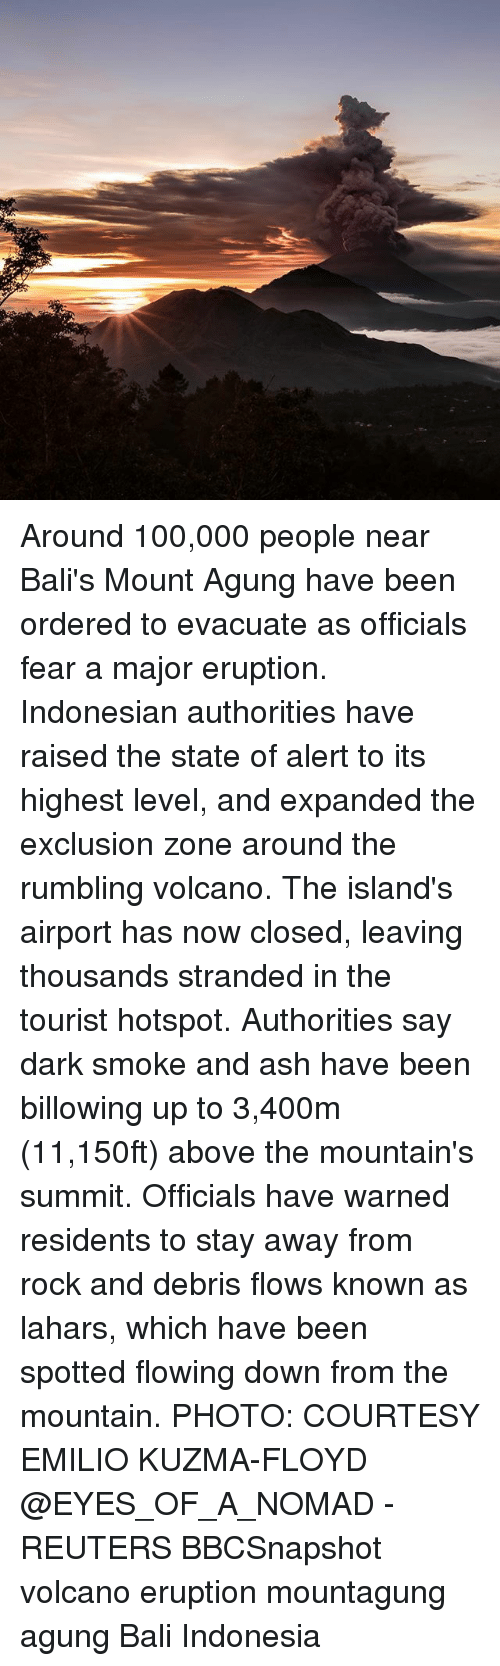 Anaconda, Ash, and Memes: Around 100,000 people near Bali's Mount Agung have been ordered to evacuate as officials fear a major eruption. Indonesian authorities have raised the state of alert to its highest level, and expanded the exclusion zone around the rumbling volcano. The island's airport has now closed, leaving thousands stranded in the tourist hotspot. Authorities say dark smoke and ash have been billowing up to 3,400m (11,150ft) above the mountain's summit. Officials have warned residents to stay away from rock and debris flows known as lahars, which have been spotted flowing down from the mountain. PHOTO: COURTESY EMILIO KUZMA-FLOYD @EYES_OF_A_NOMAD - REUTERS BBCSnapshot volcano eruption mountagung agung Bali Indonesia